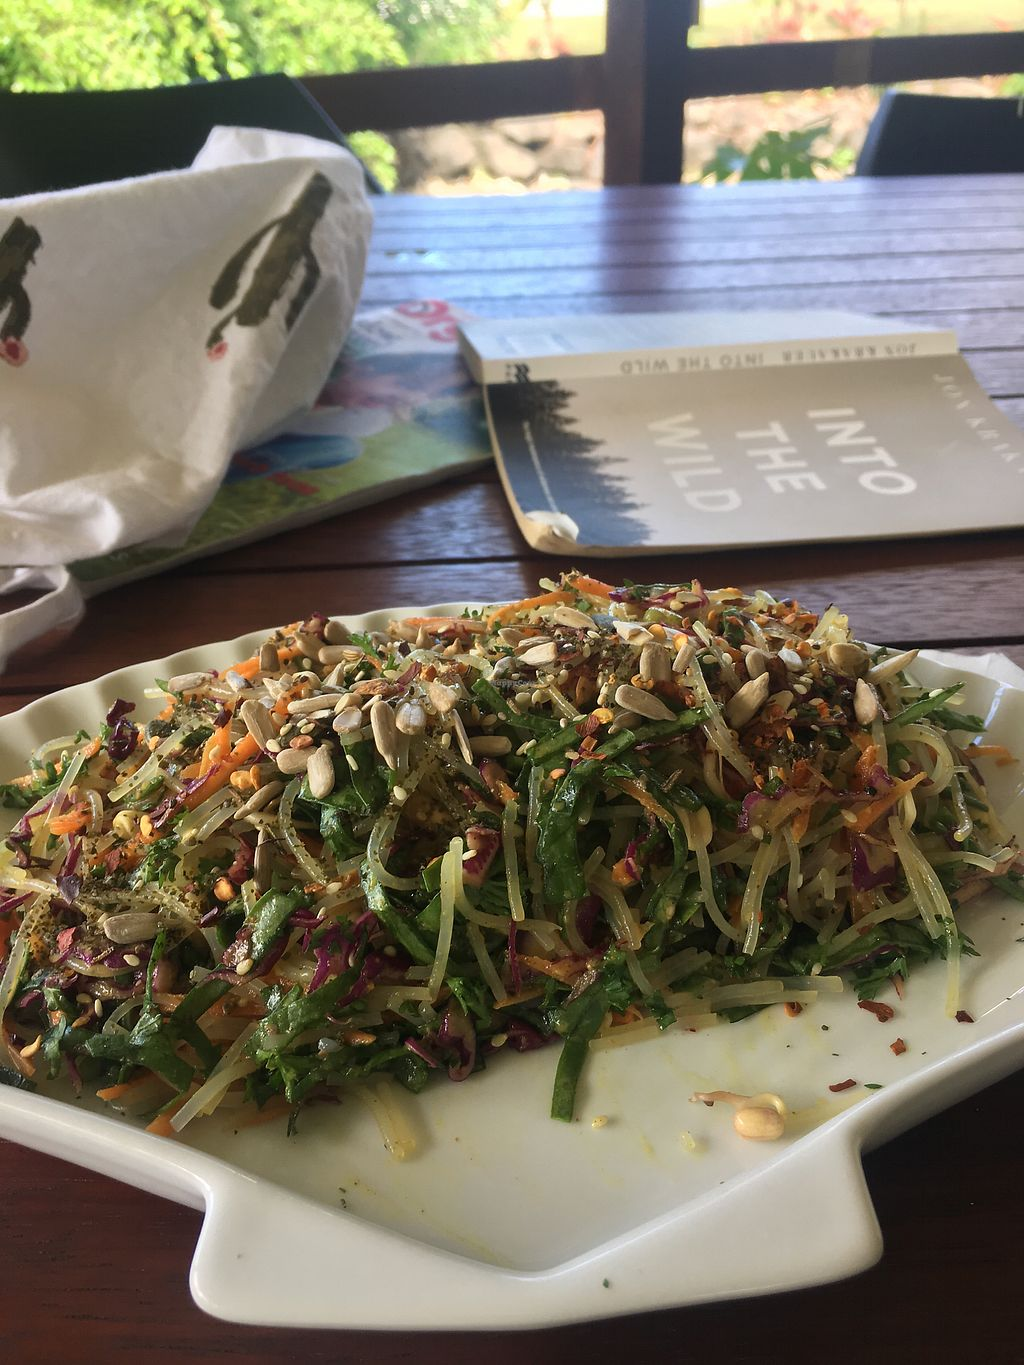 "Photo of Kaingavai Water Garden Tea House & Vegetarian Eatery  by <a href=""/members/profile/ru6ygrace"">ru6ygrace</a> <br/>Noodle salad  <br/> October 8, 2017  - <a href='/contact/abuse/image/90670/313004'>Report</a>"